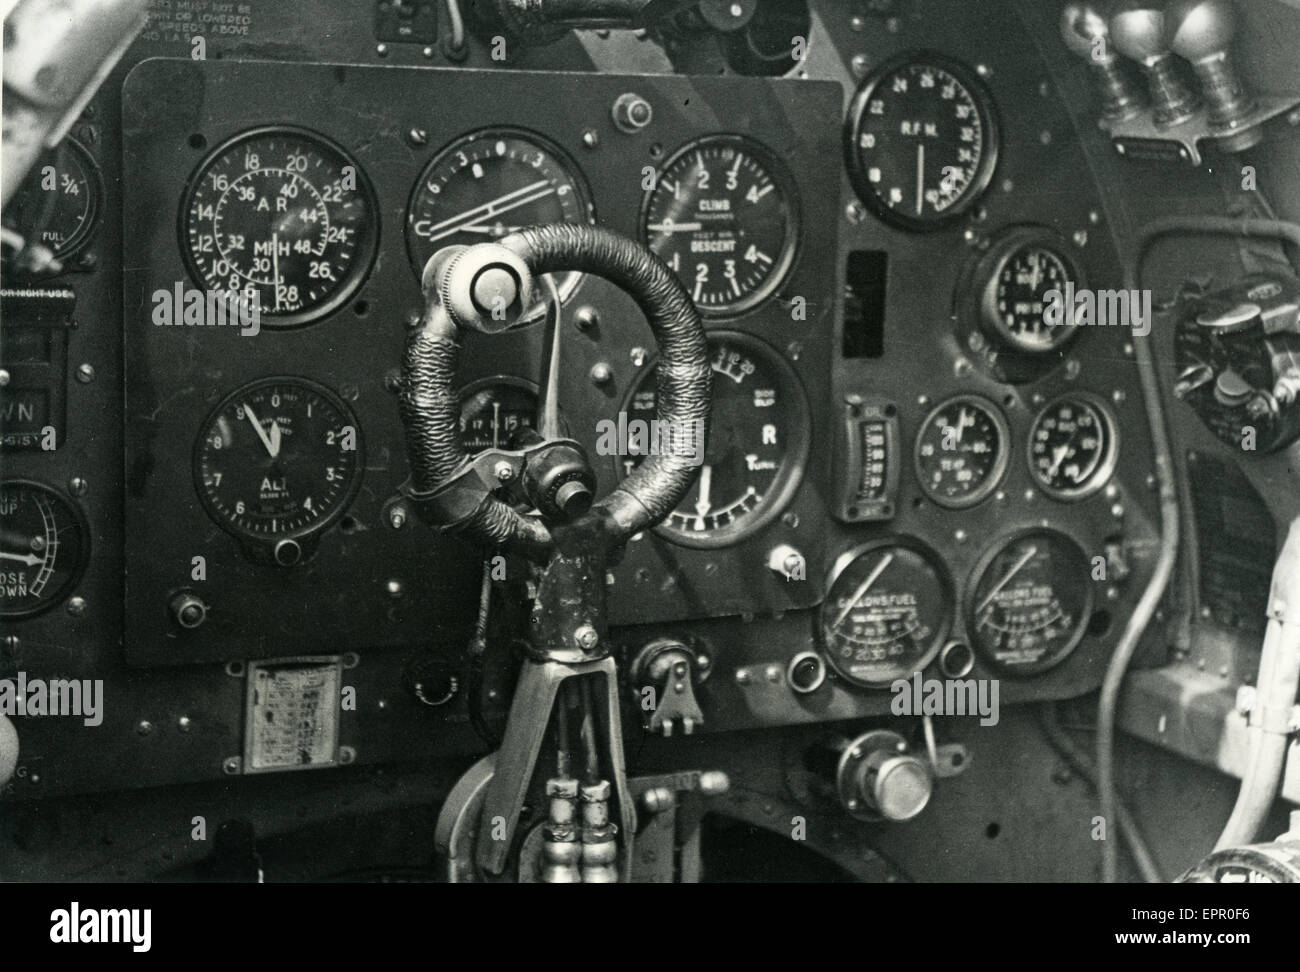 COCKPIT OF SPITFIRE MV-K (R6883) based at Warmwell in summer of 1943 before No 600 Squadron RAF transferred to Malta - Stock Image